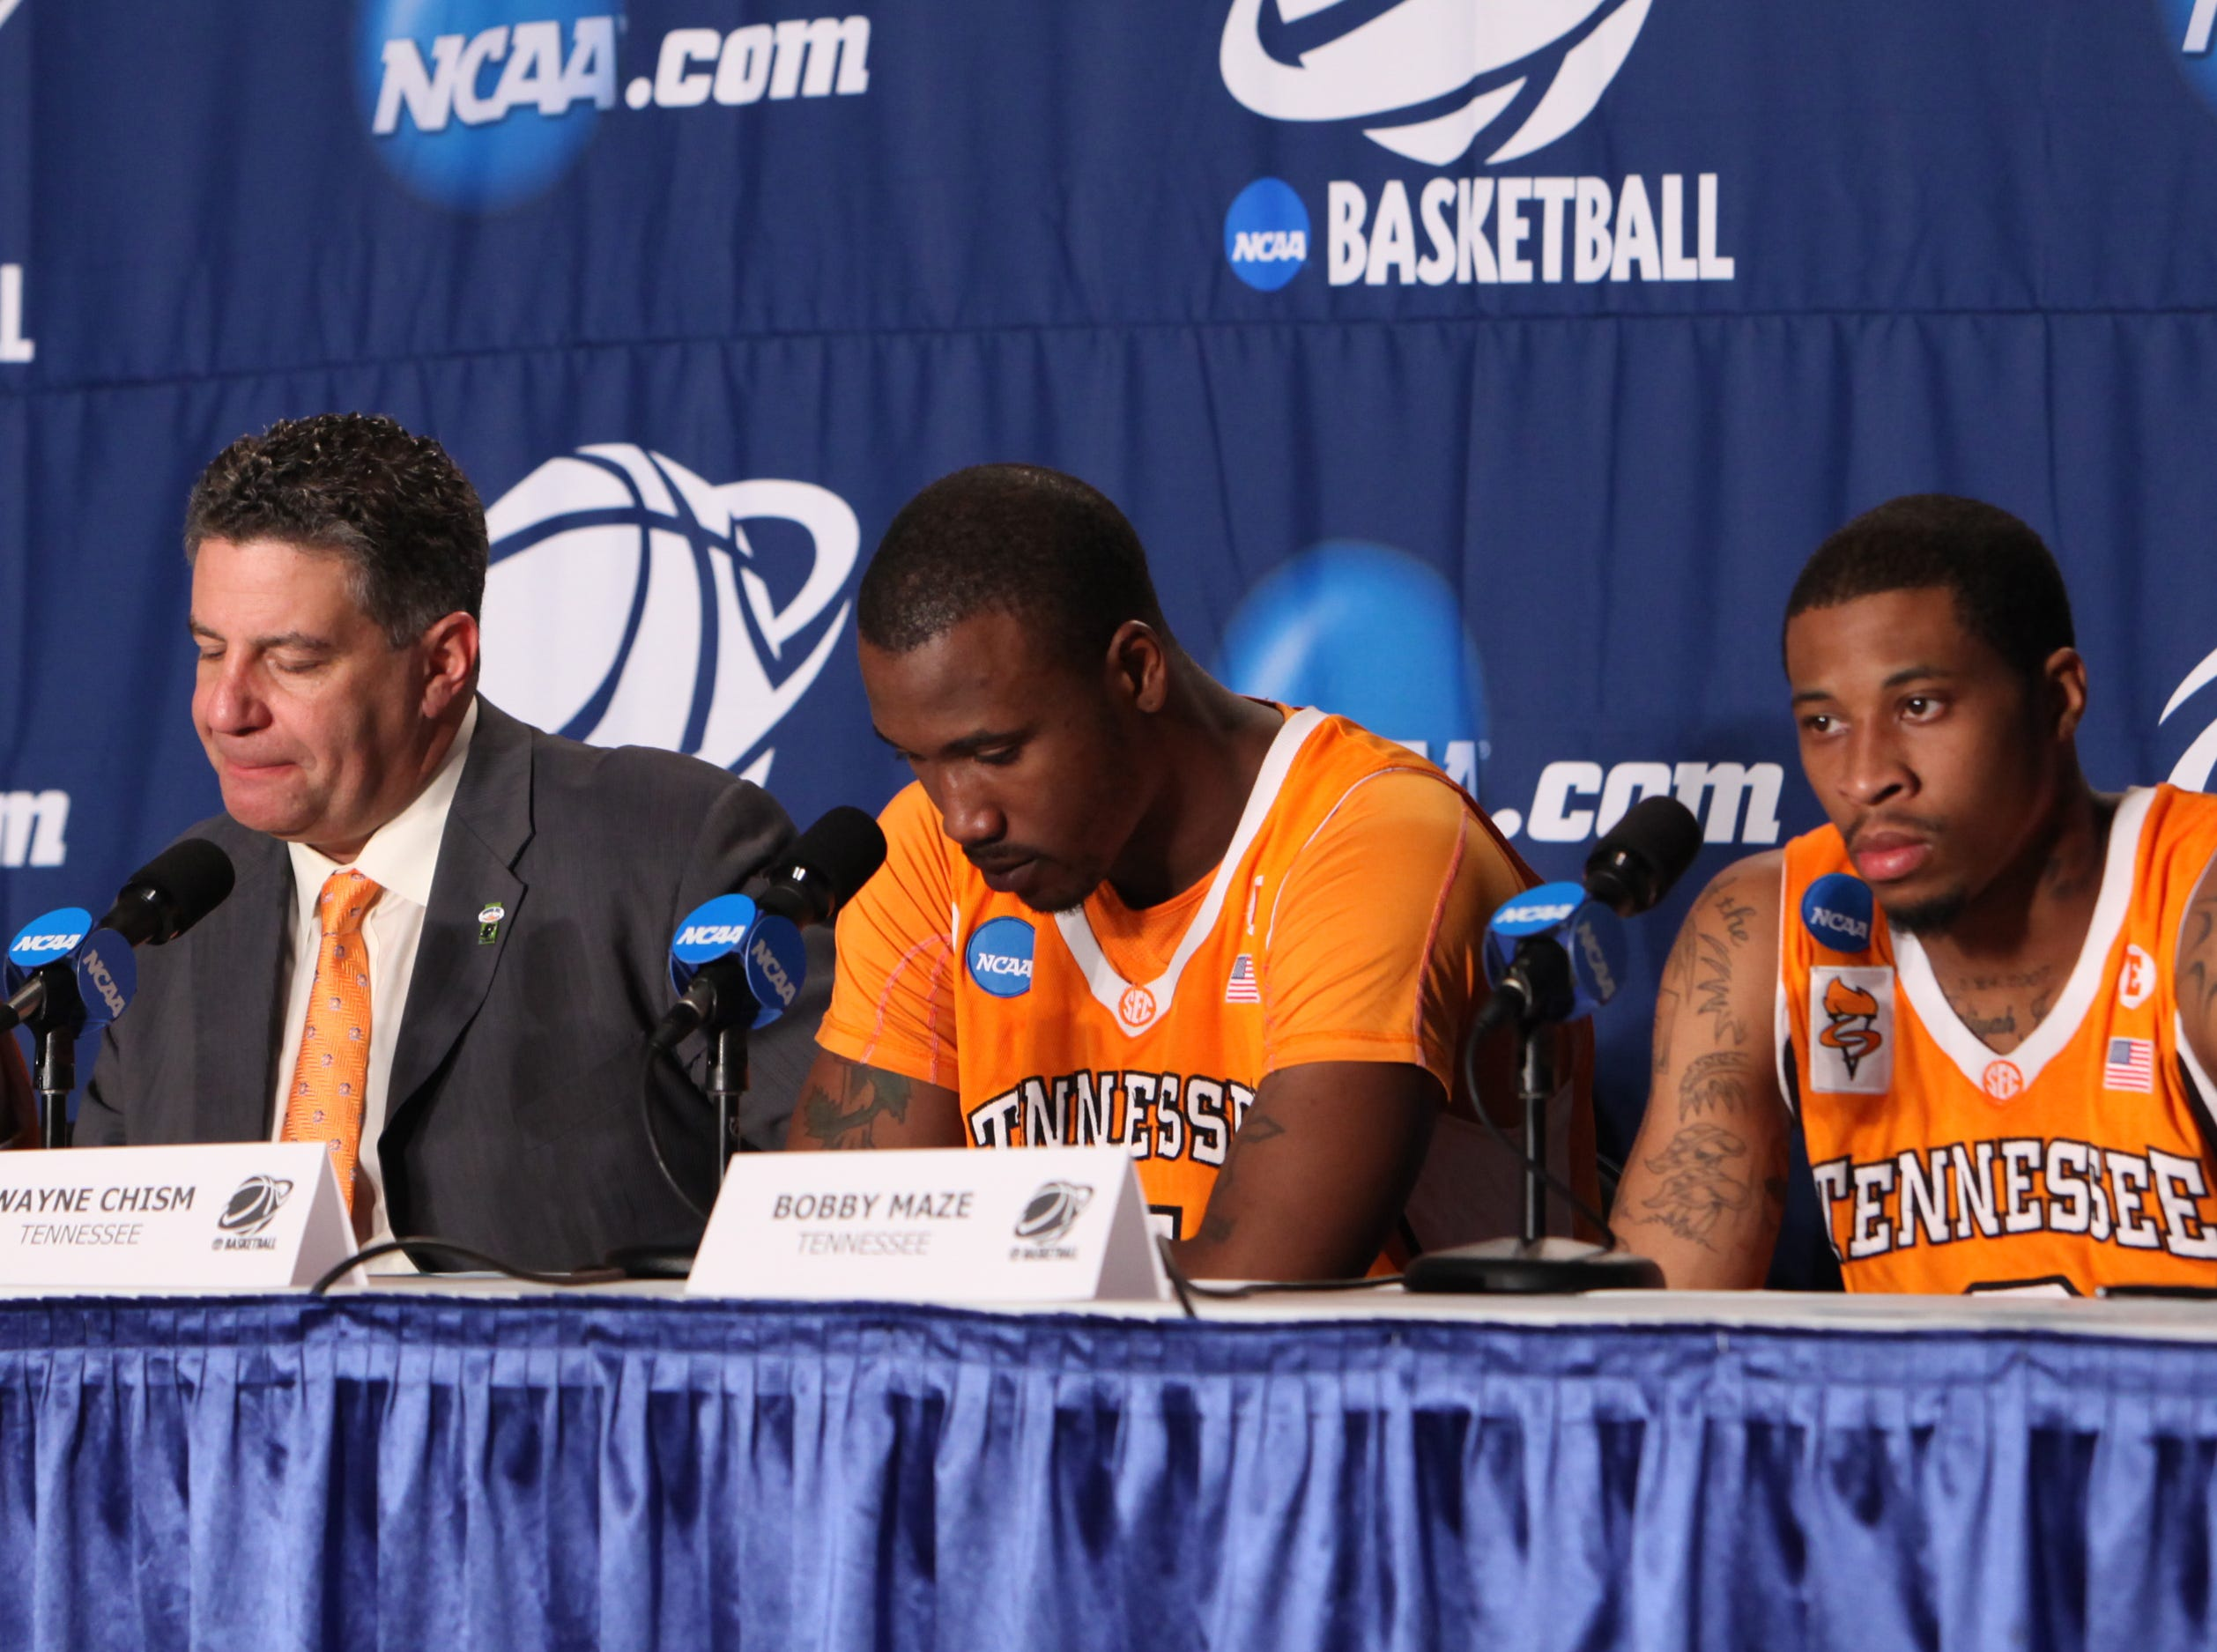 Tennessee's J.P. Prince, coach Bruce Pearl, Wayne Chism and Bobby Maze attend a press conference after the Vols lost to the Michigan State Spartans during the NCAA tournament at the Edward Jones Dome in St. Louis, Mo., Sunday, Mar. 28, 2010.